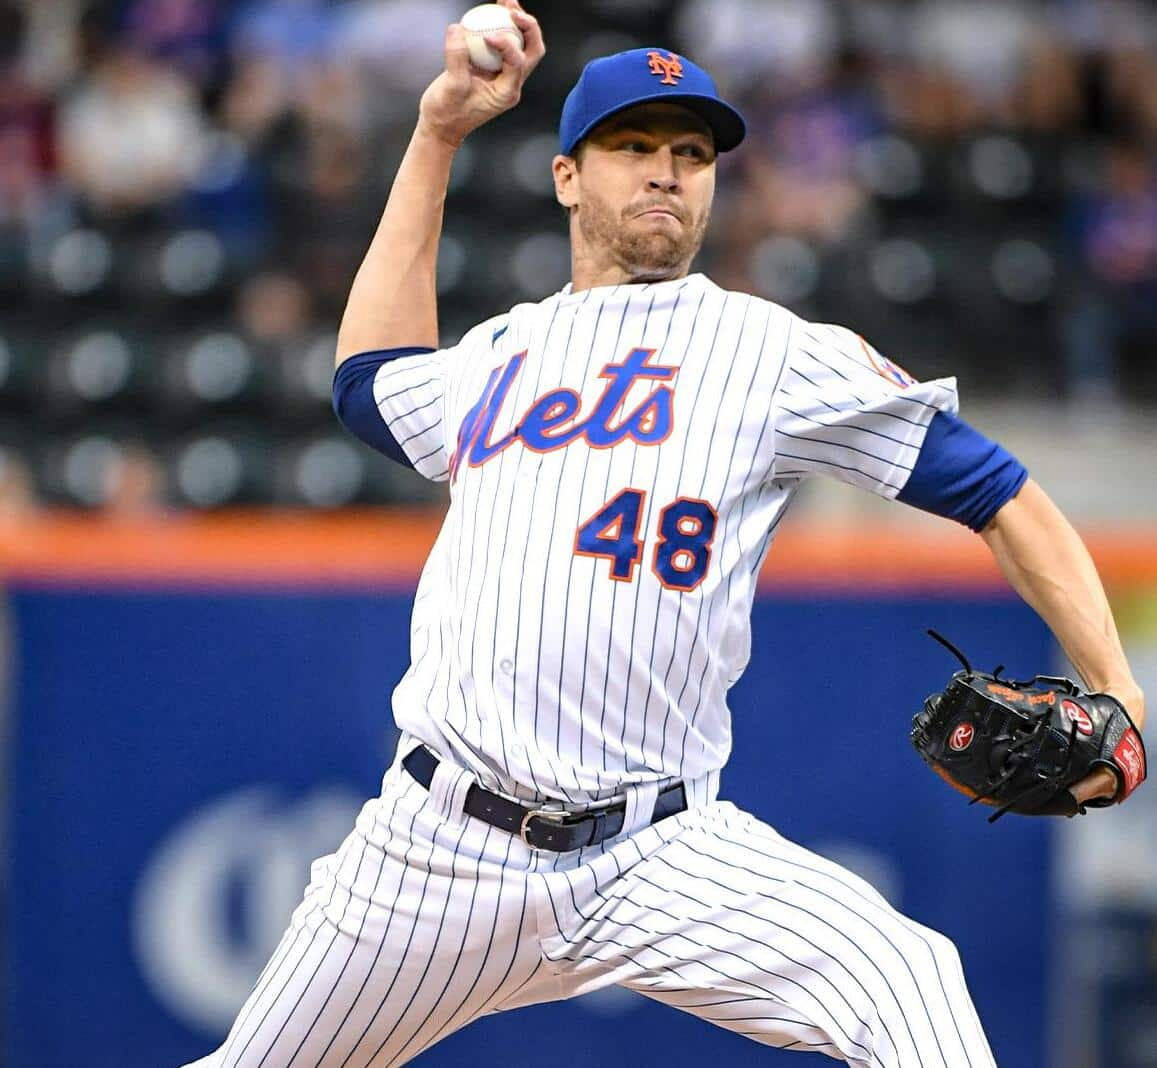 New York Mets pitcher Jacob Degrom throwing to the plate